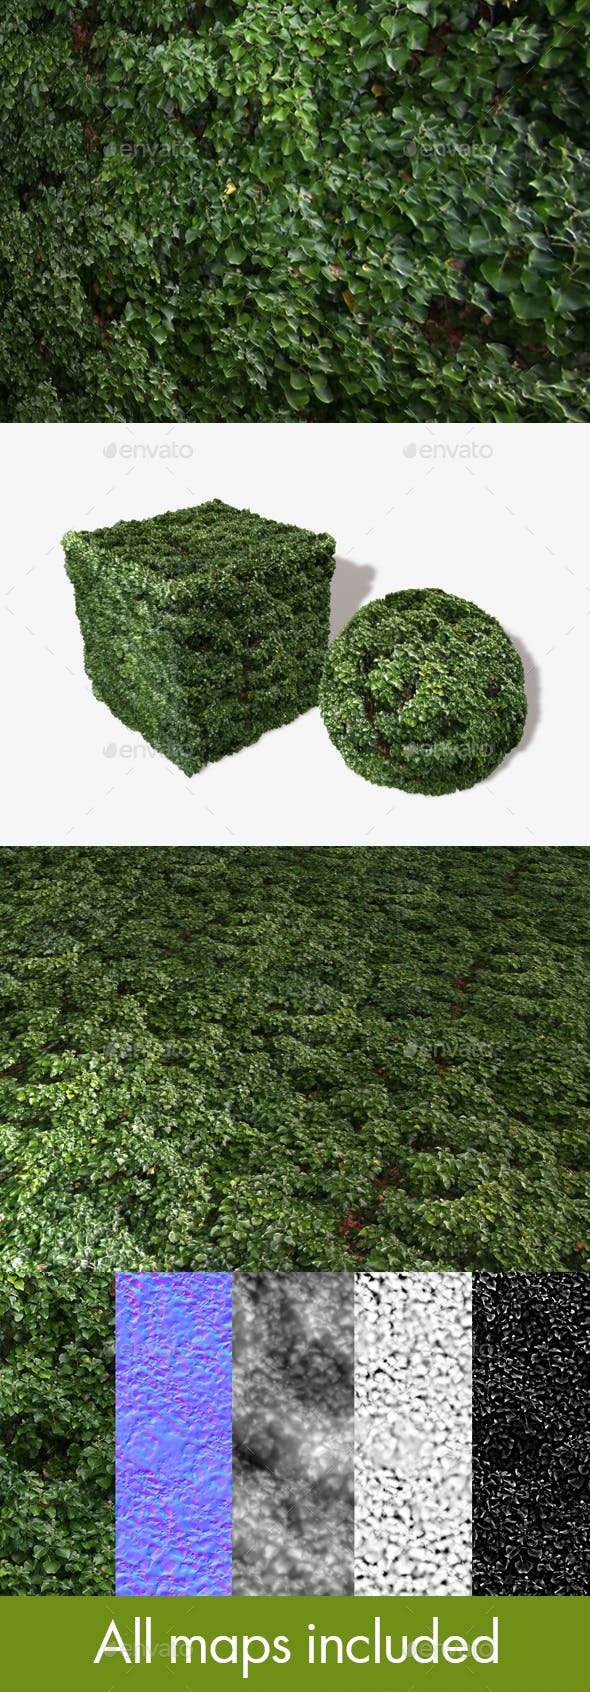 Dense Shrubbery Seamless Texture - 3DOcean Item for Sale